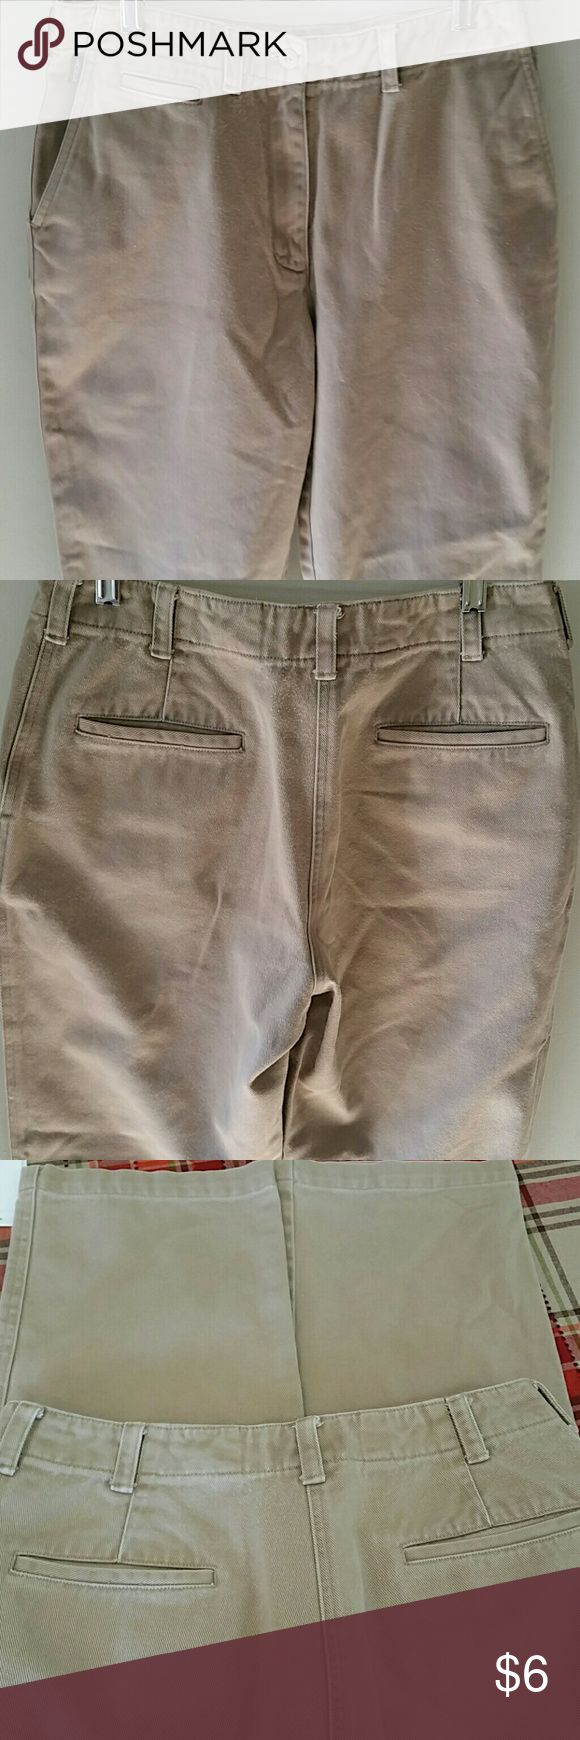 LADIES  RALPH LAUREN  PANTS, RALPH LAUREN PANTS,  SIZE  6 ,100%COTTON, MADE IN HONG KONG,  MACHINE WASH COLD,  COLOR  TAN, WAIST 31IN,INSEAM 30IN,  STRAIGHT LEG, RALPH LAUREN Pants Straight Leg